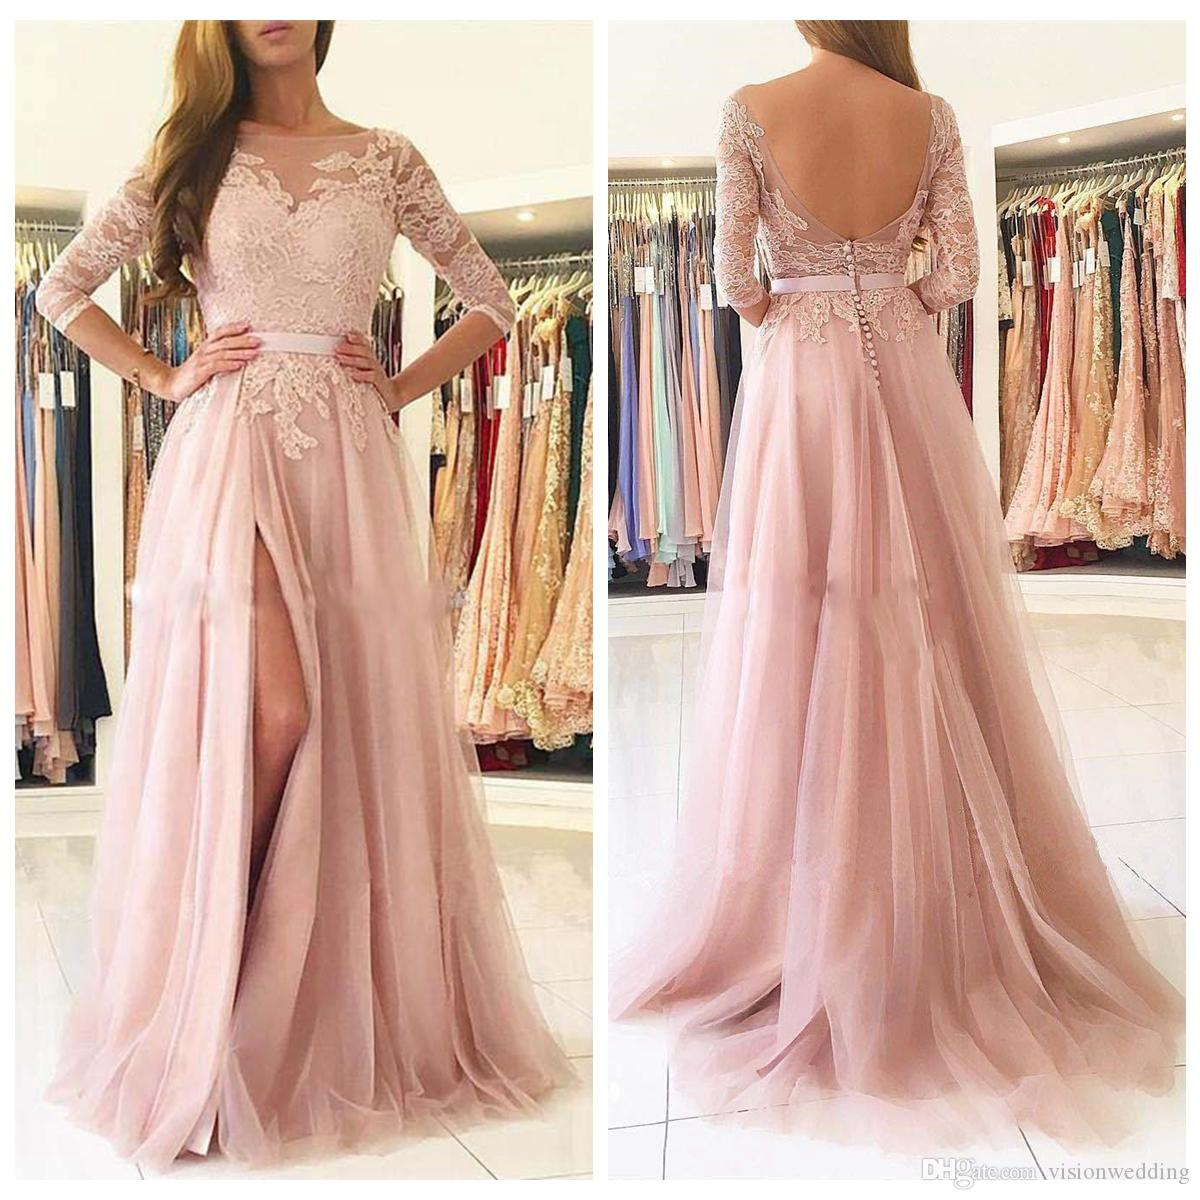 bcd078caf80 Prom Dresses 2019 Rose Pink Bateau Sheer 3 4 Illusion Long Sleeve Sashes  Floor Length Side Slit Party Cocktail Bridesmaid Dress Evening Gown Prom  Dress ...